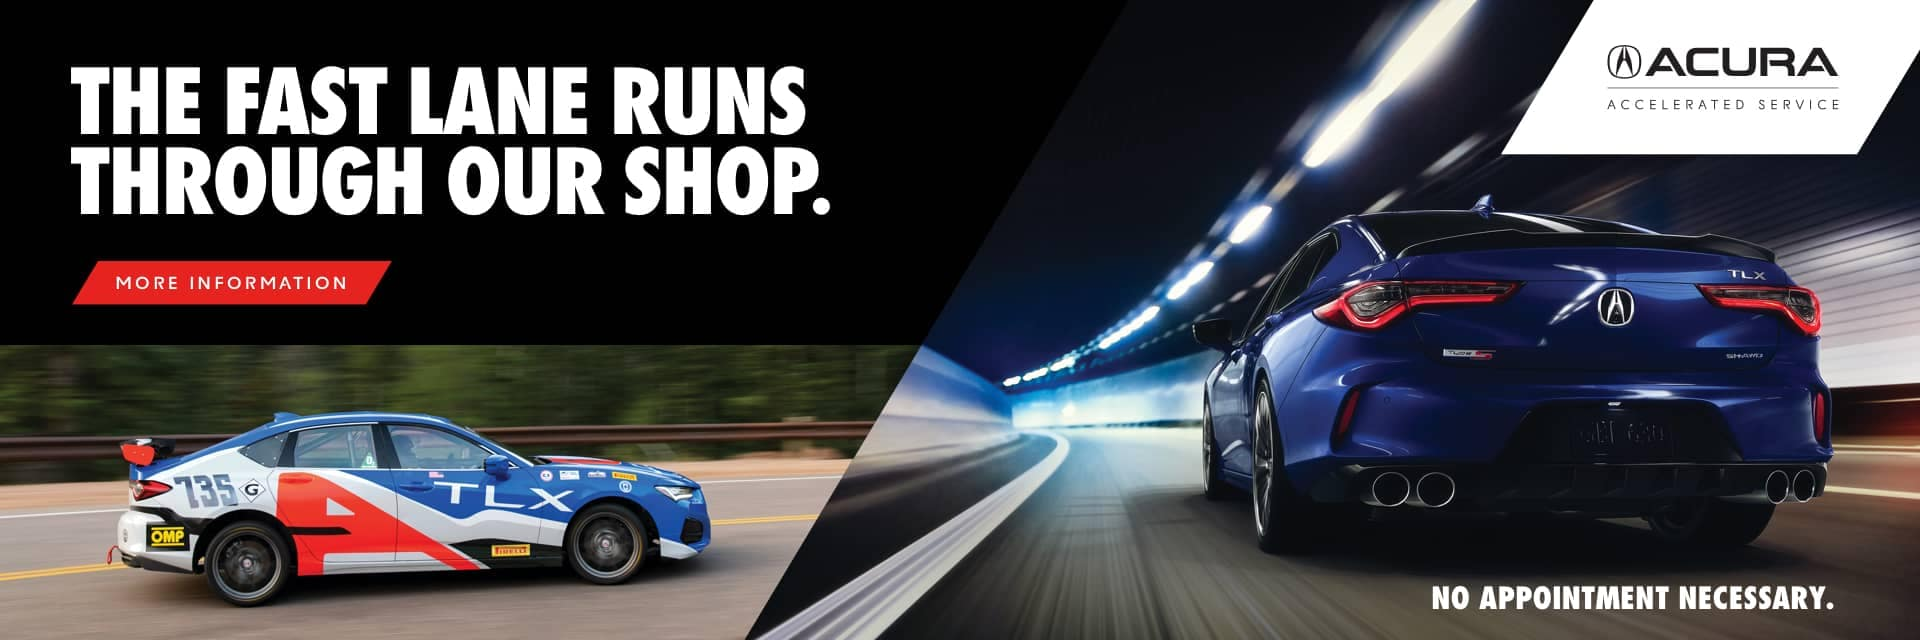 Acura-Accelerated Services banner